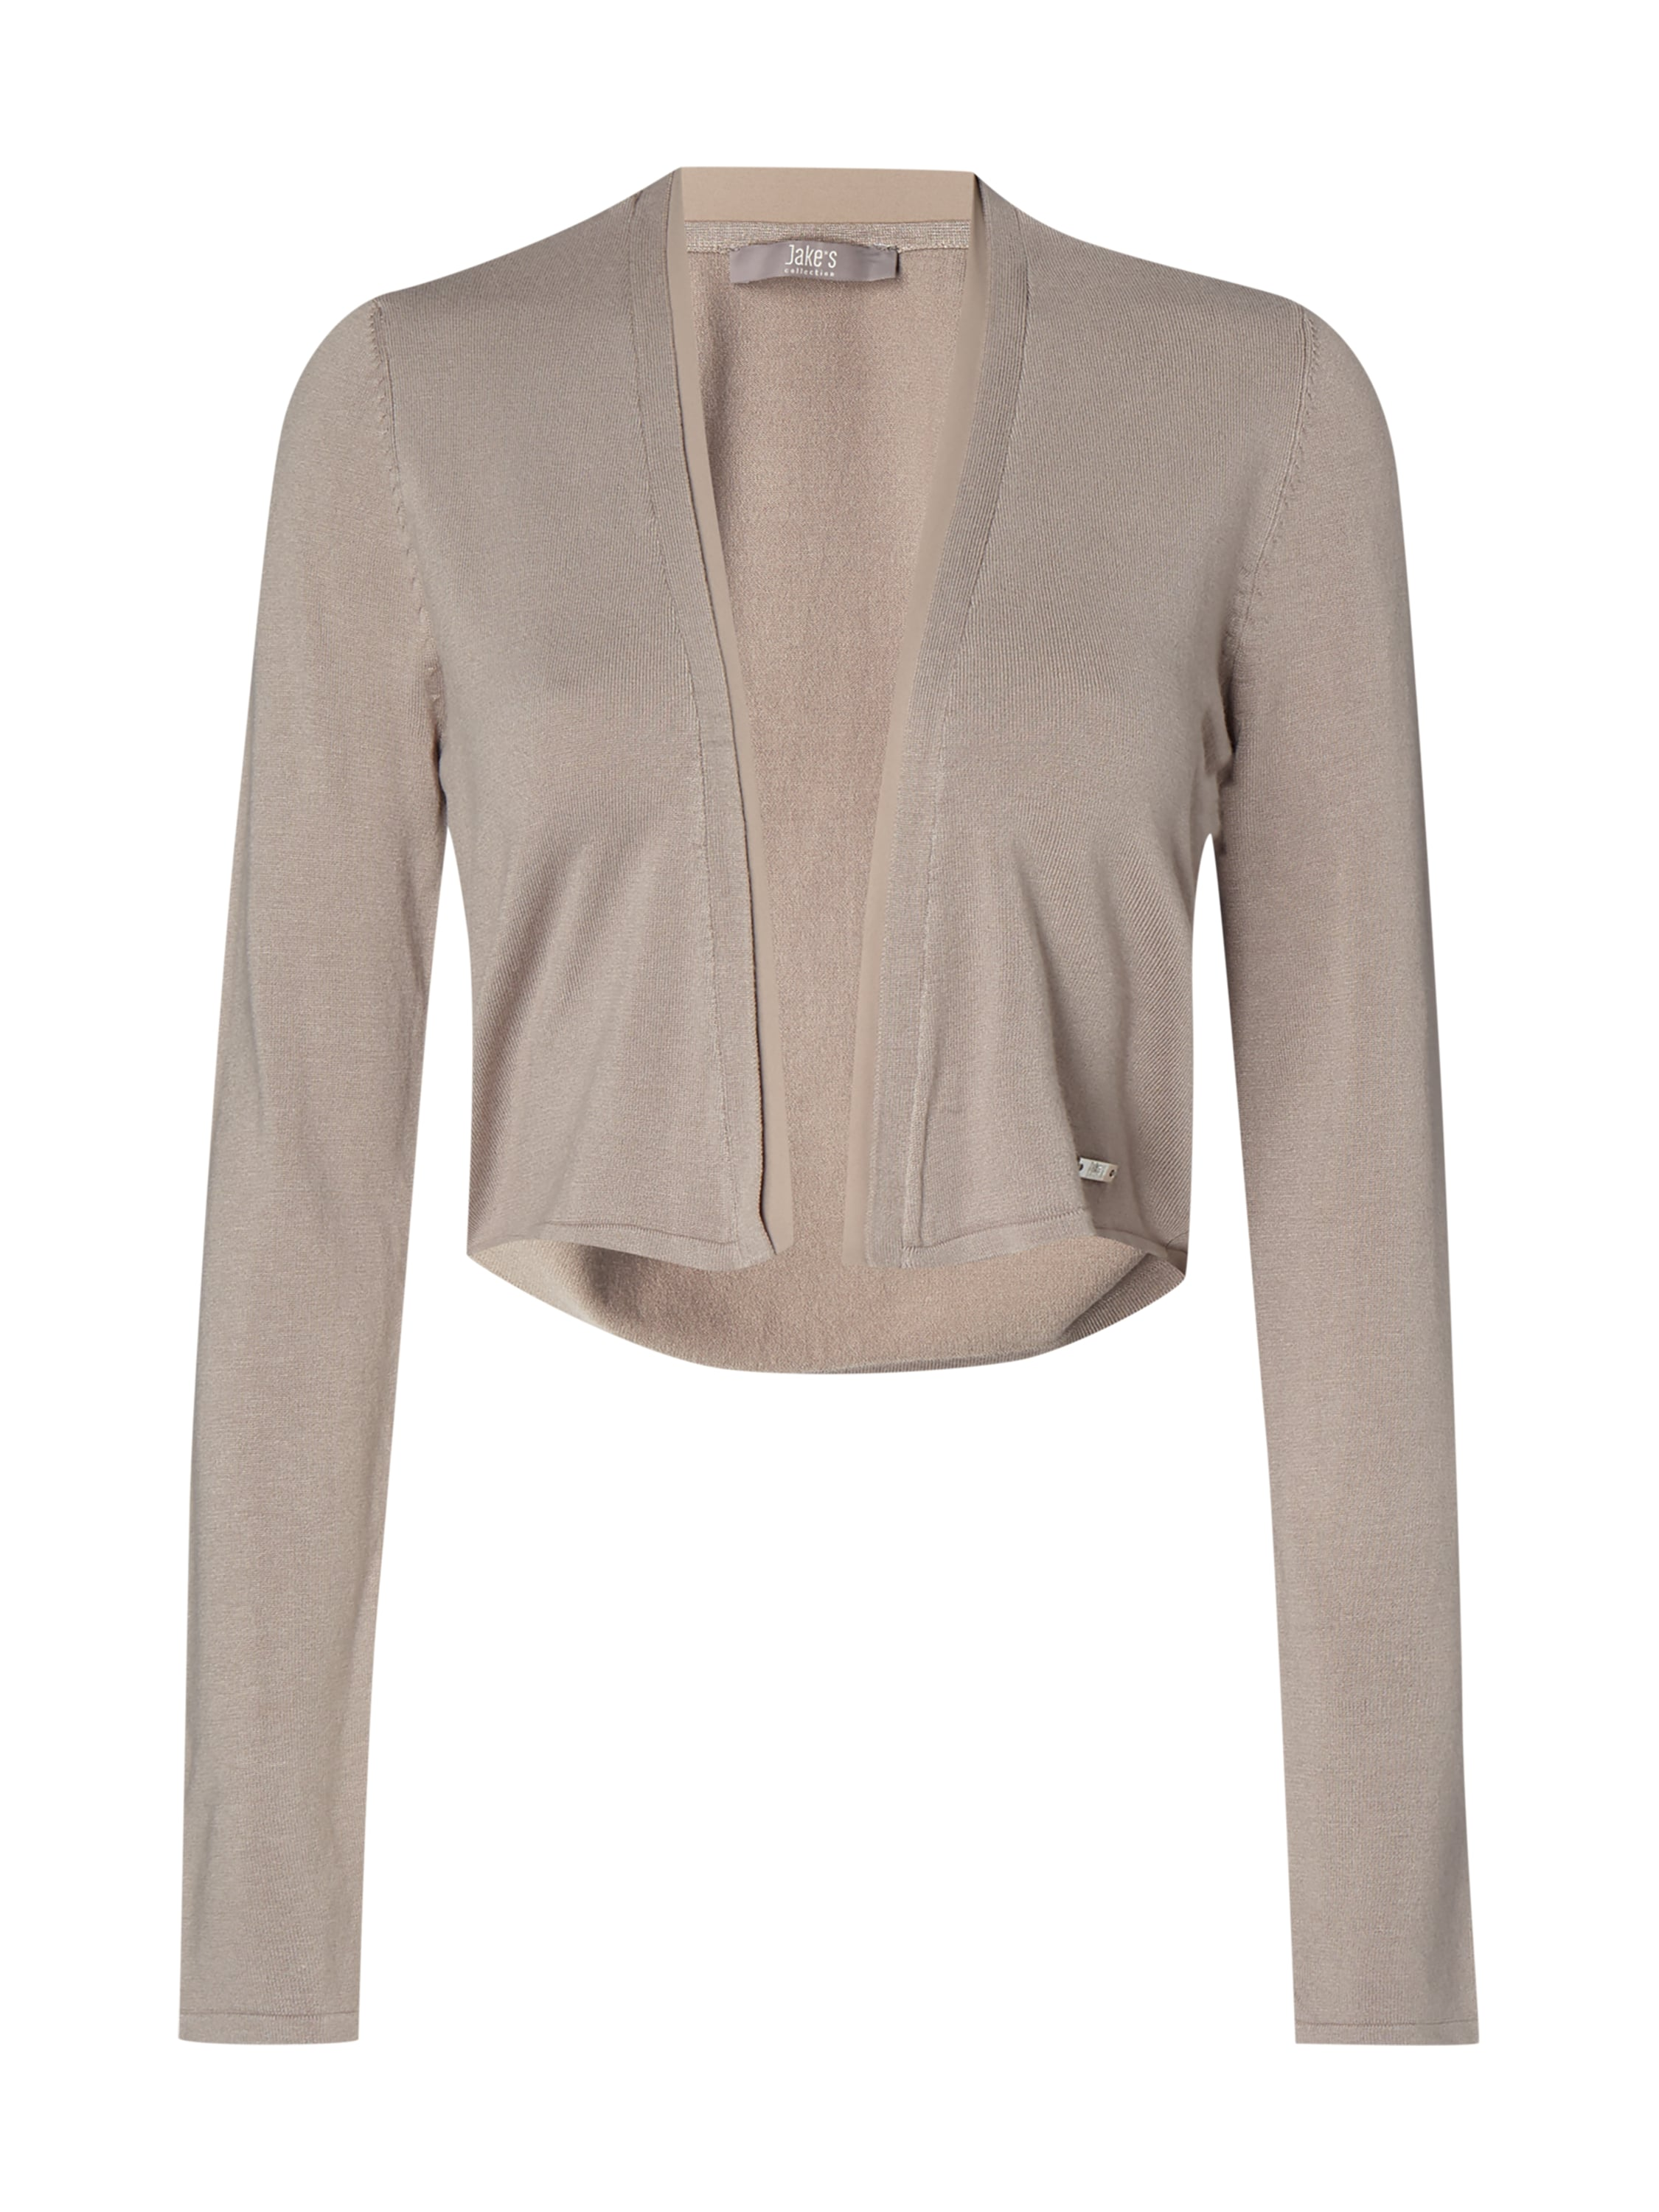 Jake*s Collection Bolero mit offener Vorderseite - Taupe